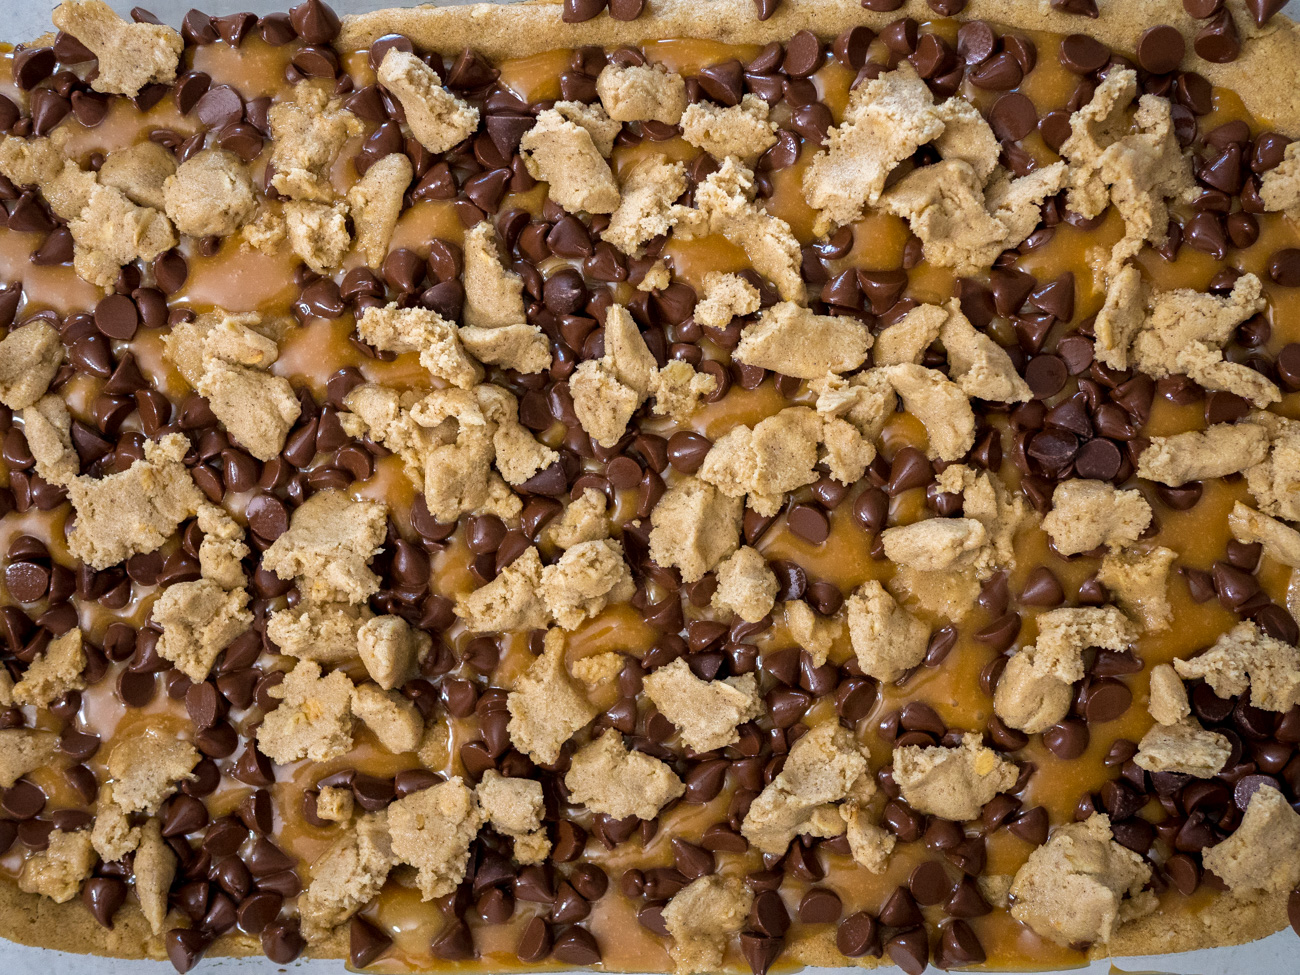 Crumble remaining cookie dough evenly over chocolate and caramel. Bake for another 15 minutes. Cool completely before cutting into bars. Serve and enjoy!